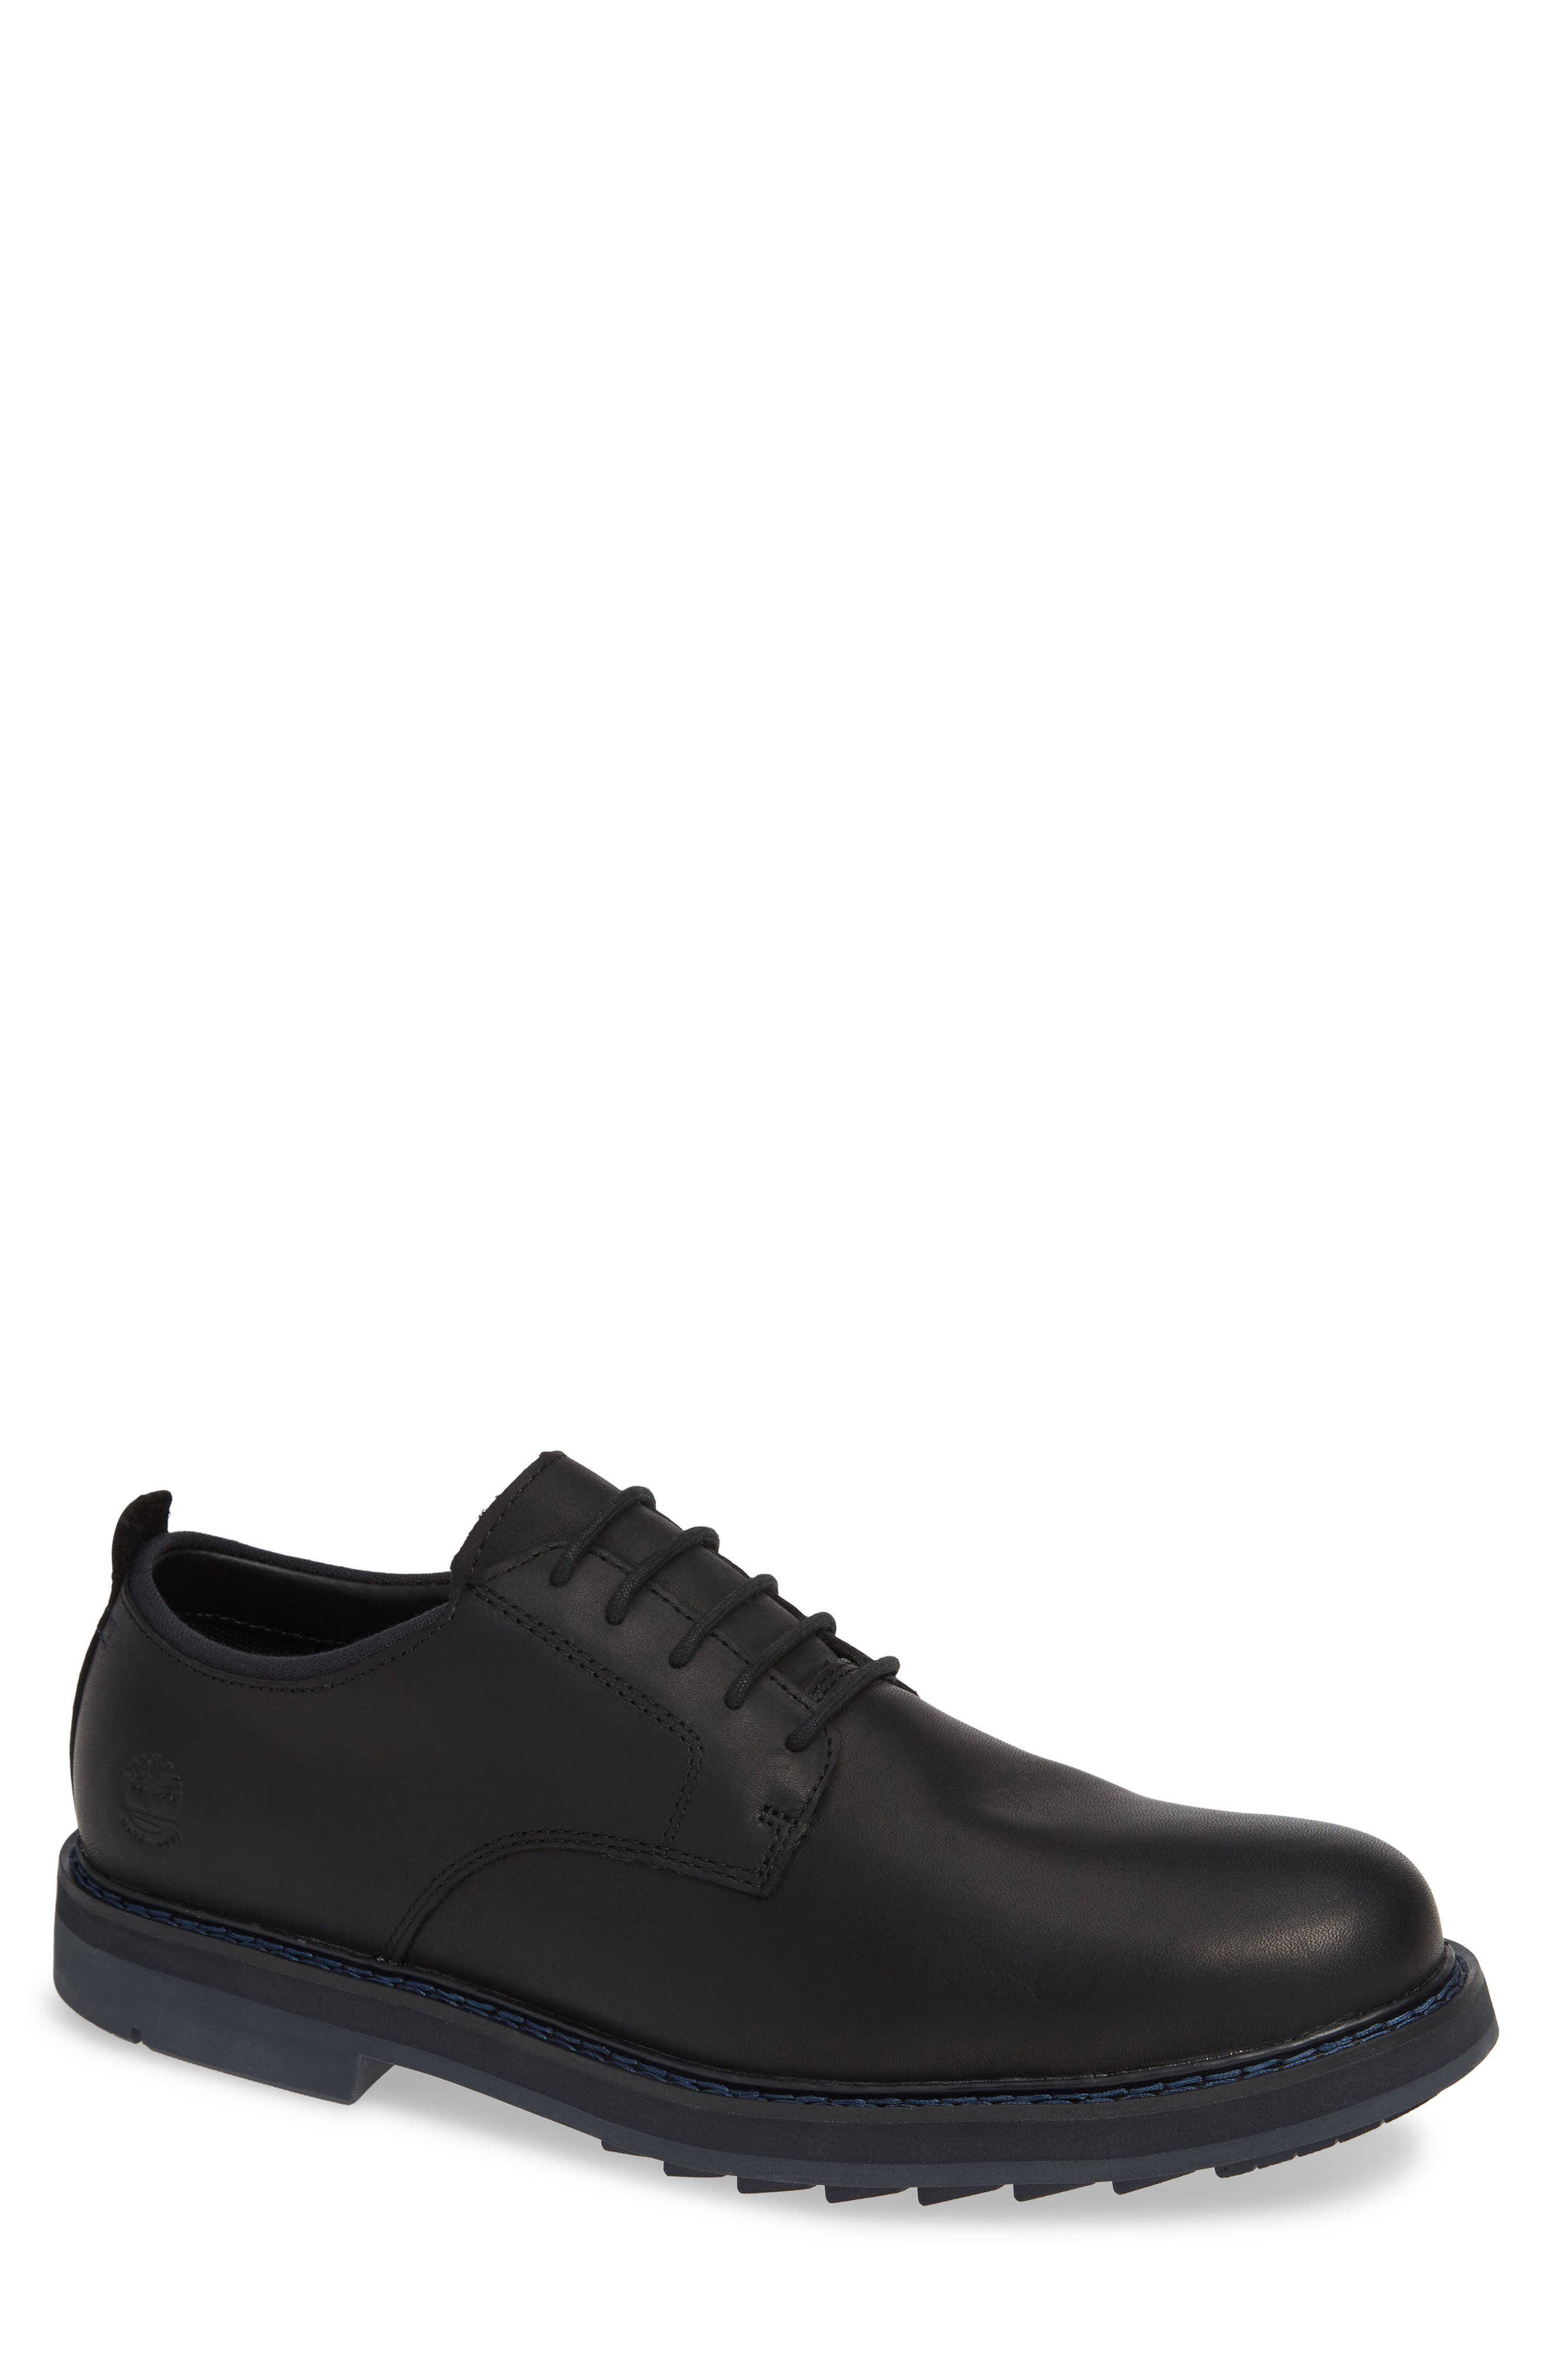 Squall Canyon Waterproof Plain Toe Derby,                         Main,                         color, BLACK LEATHER